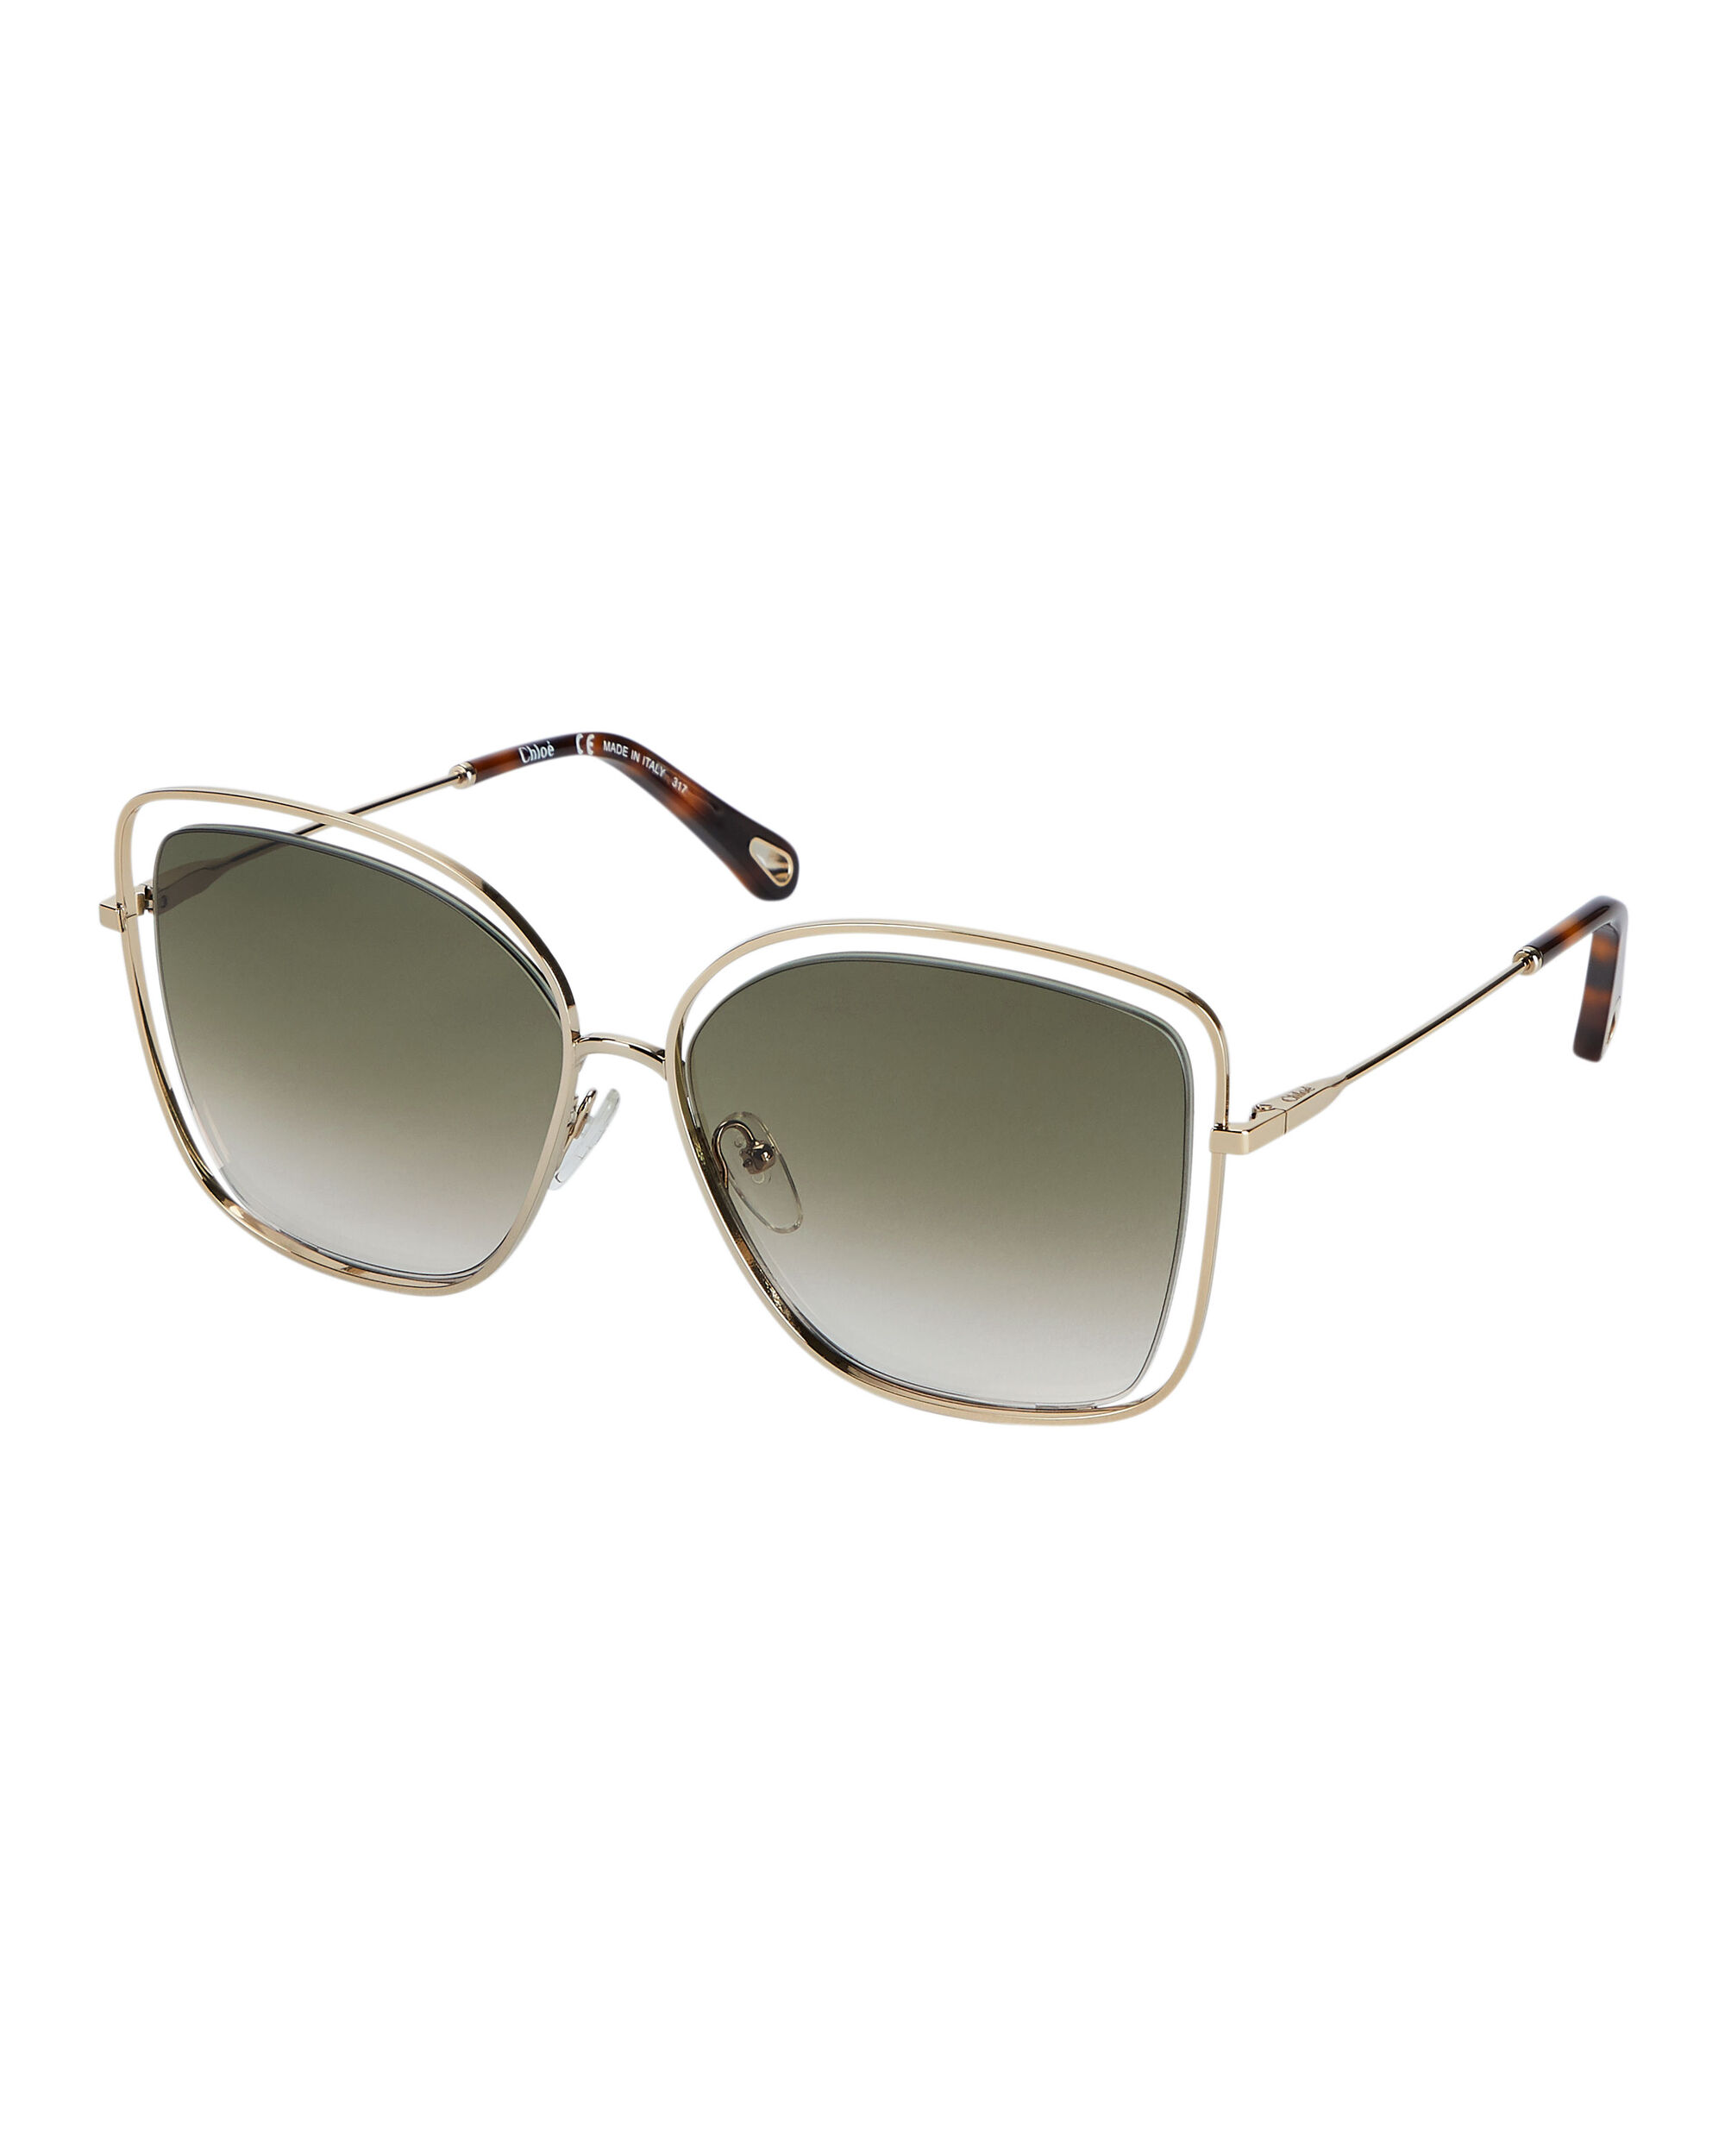 Poppy Square Sunglasses, GOLD, hi-res